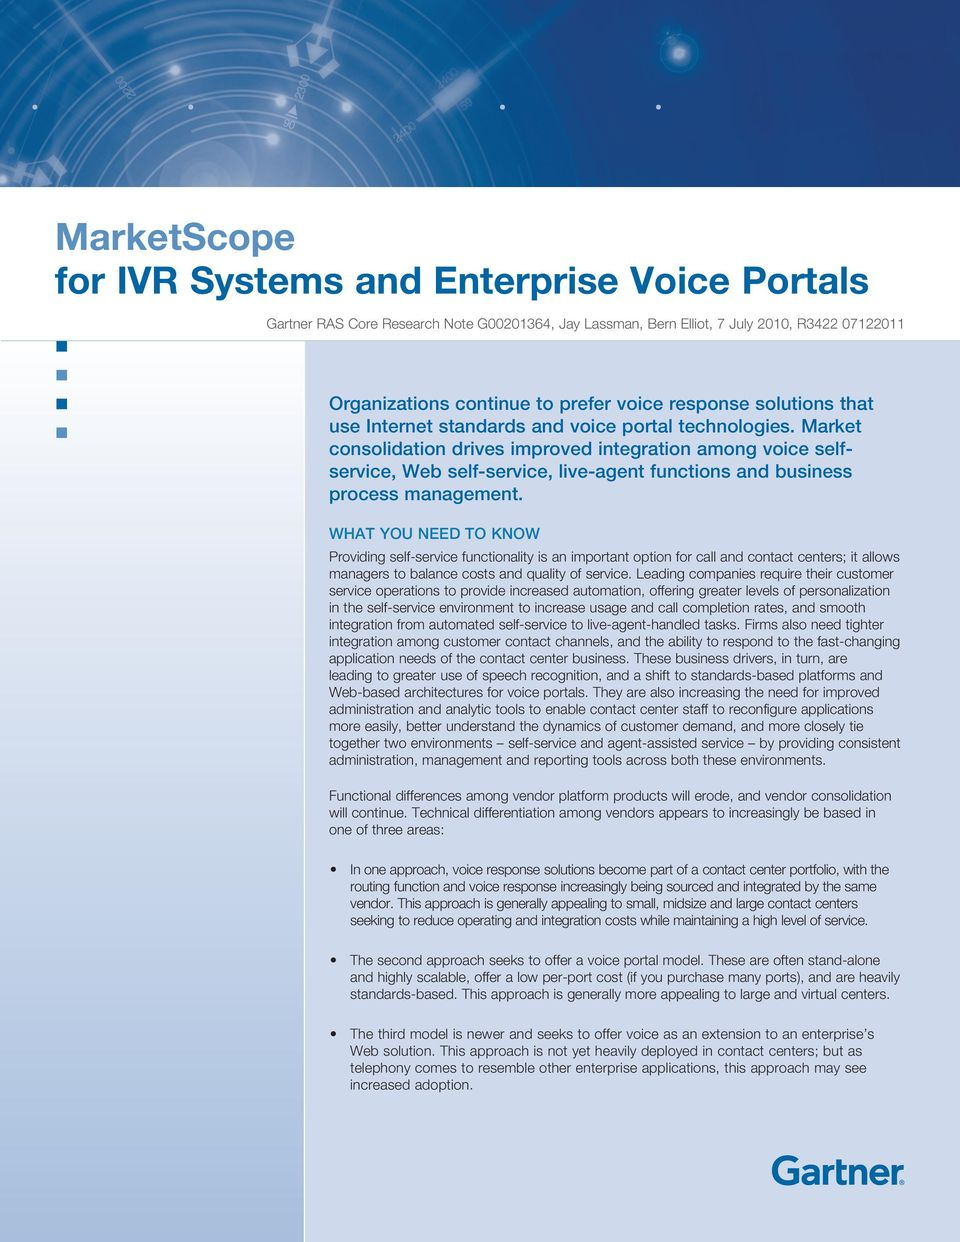 Market consolidation drives improved integration among voice selfservice, Web self-service, live-agent functions and business process management.